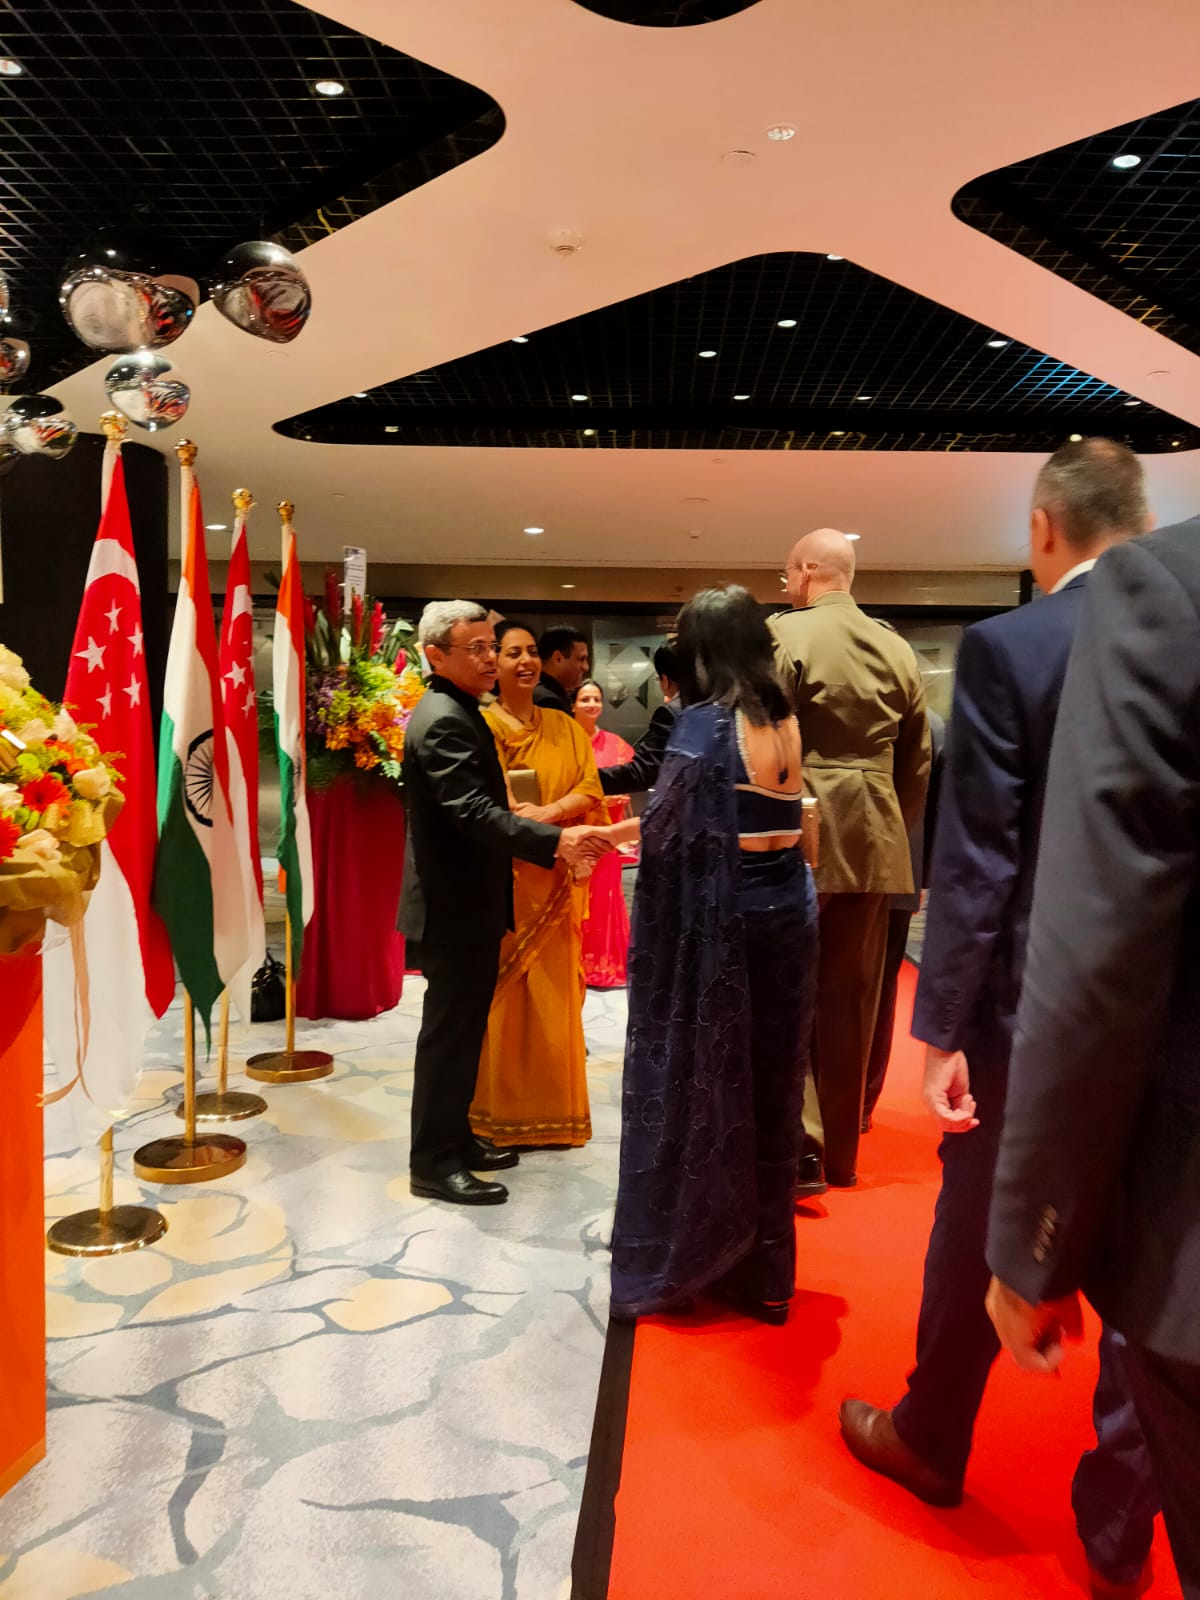 The High Commissioner and Dr. Ghazala Shahabuddin, welcomed the guests to the celebrations of the 71st Republic Day of India at the elegant Fairmont Ballroom at Raffles City Convention Centre, Singapore. Photo: Connected to India